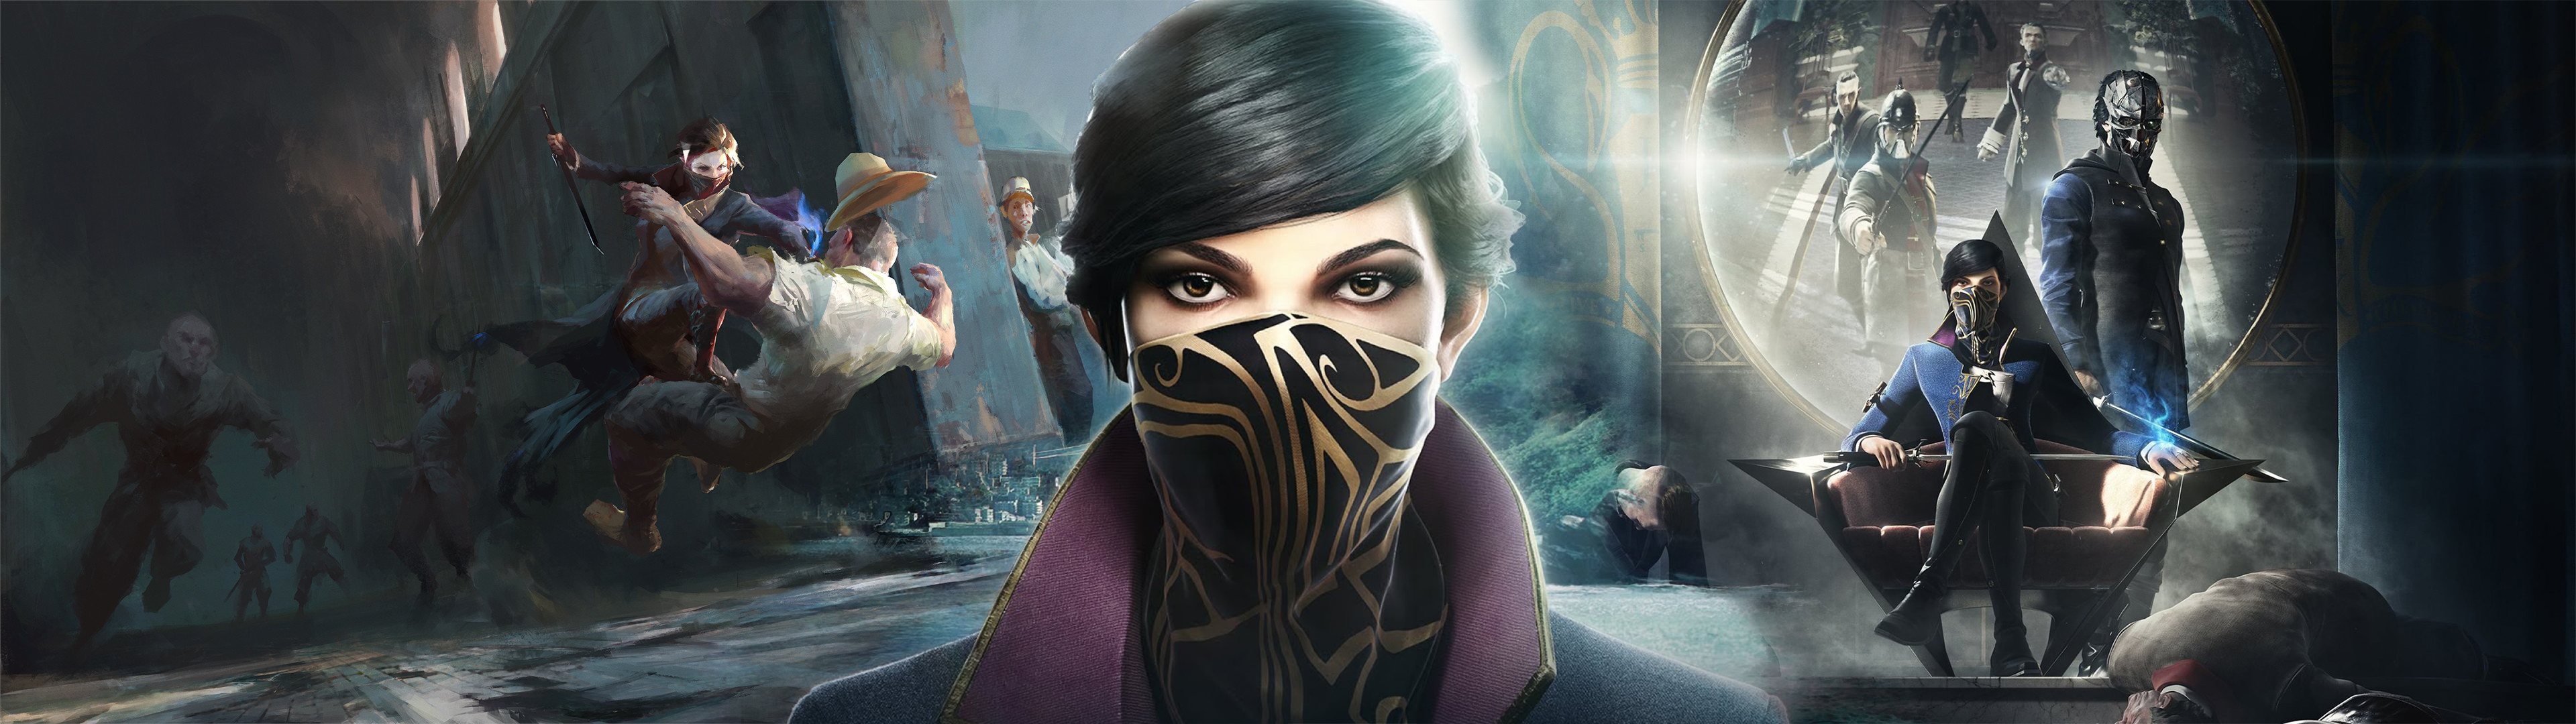 Dishonored 2 Dual Screen Wallpaper By Lariatura